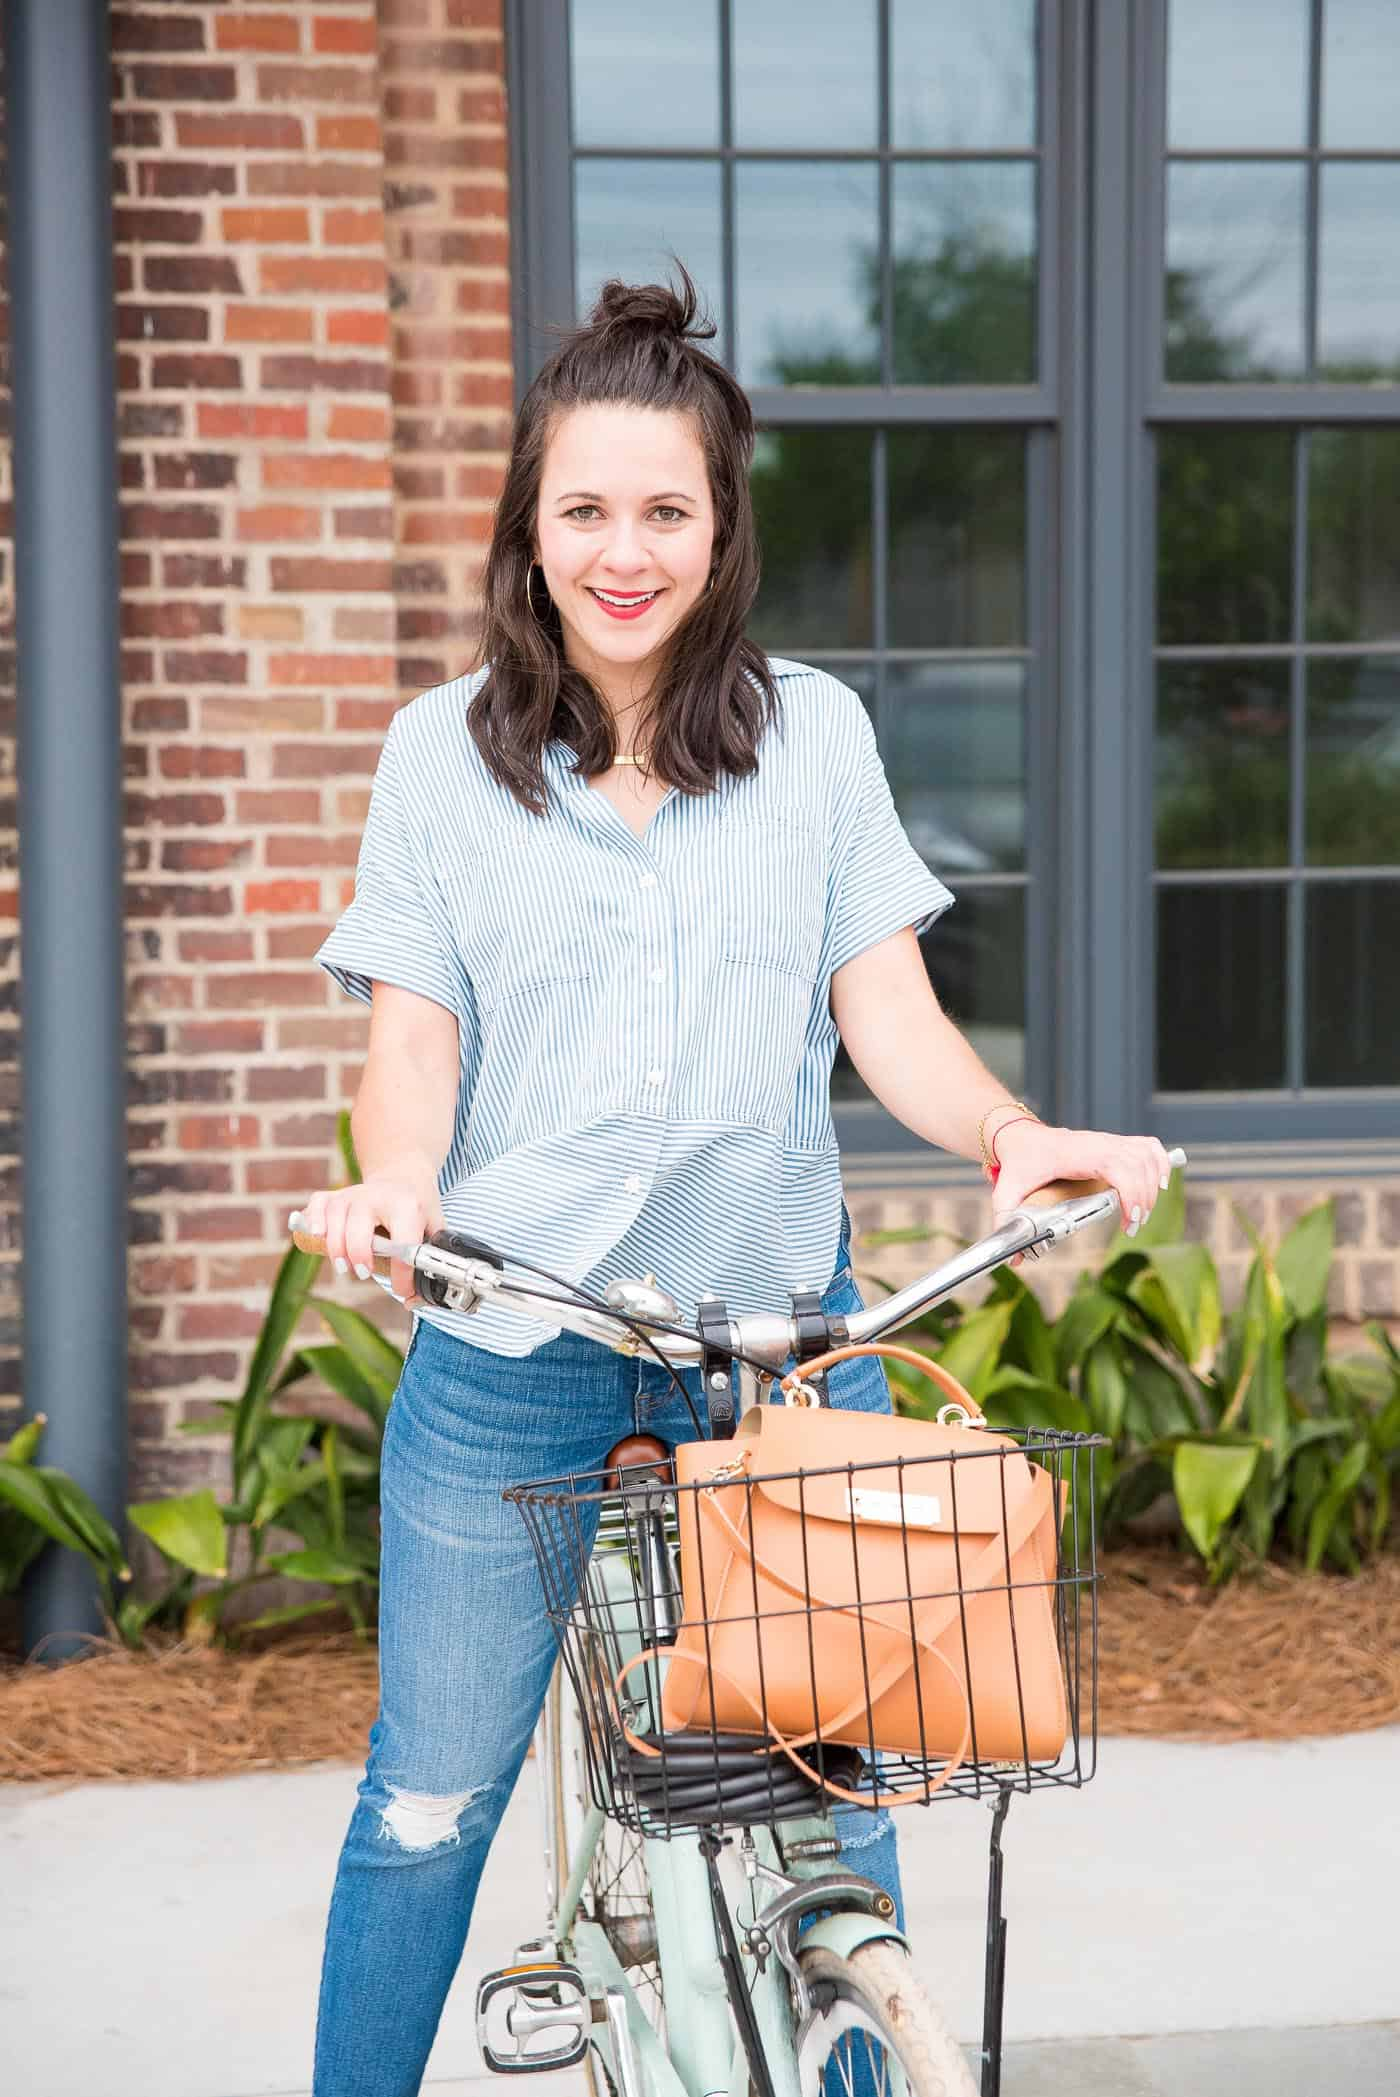 striped shirt, cute outfit for bikes - My Style Vita @mystylevita